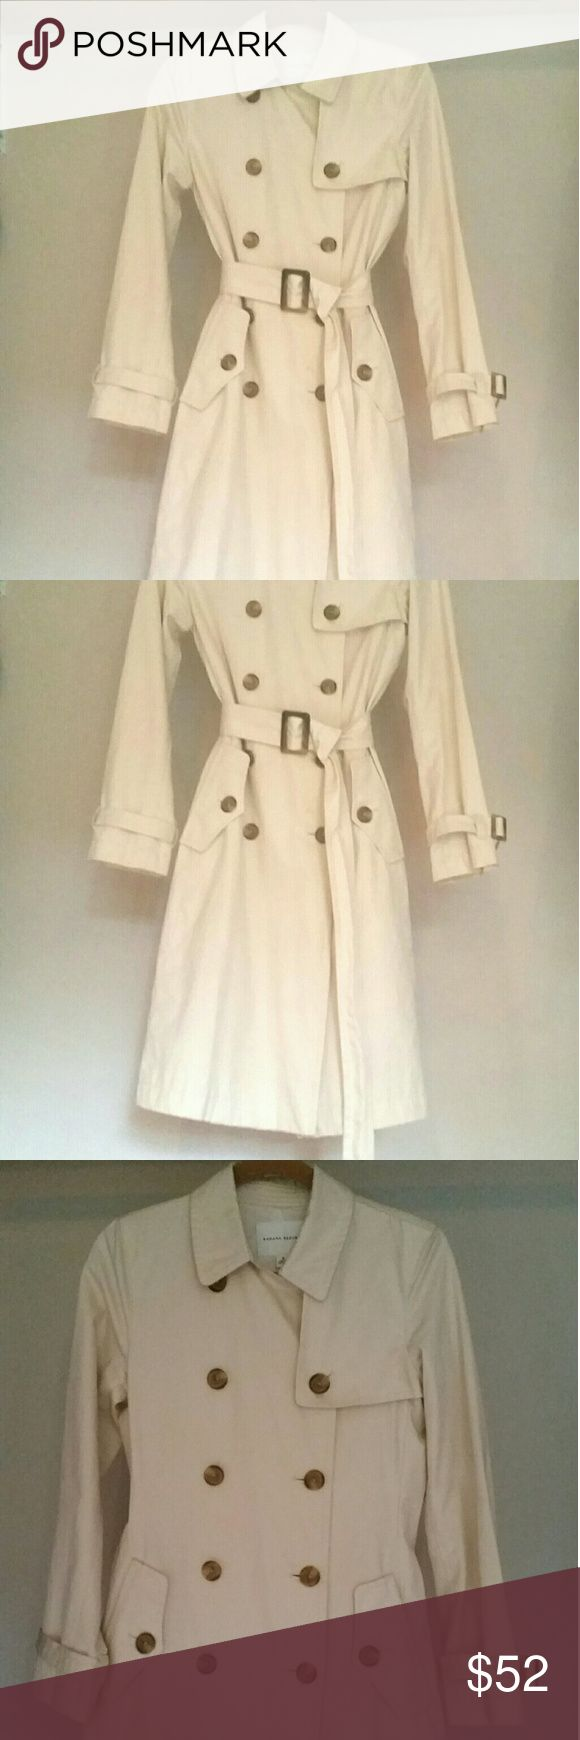 Banana Republic woman's rain/trench coat, size S Thiss is a traditional style Banana Republic woman's rain/trench coat. Size small. Fully lined. Verstatile. Only worn a few times. It is in perfect condition...not a single stain or flaw. No missing buttons. Has a belt for the waist to give it a more feminine, body shaping look. The ends of the sleeves have matching, minature belts to tighten for cold weather.   Please feel free to contact me with questions or if you need exact measurements…